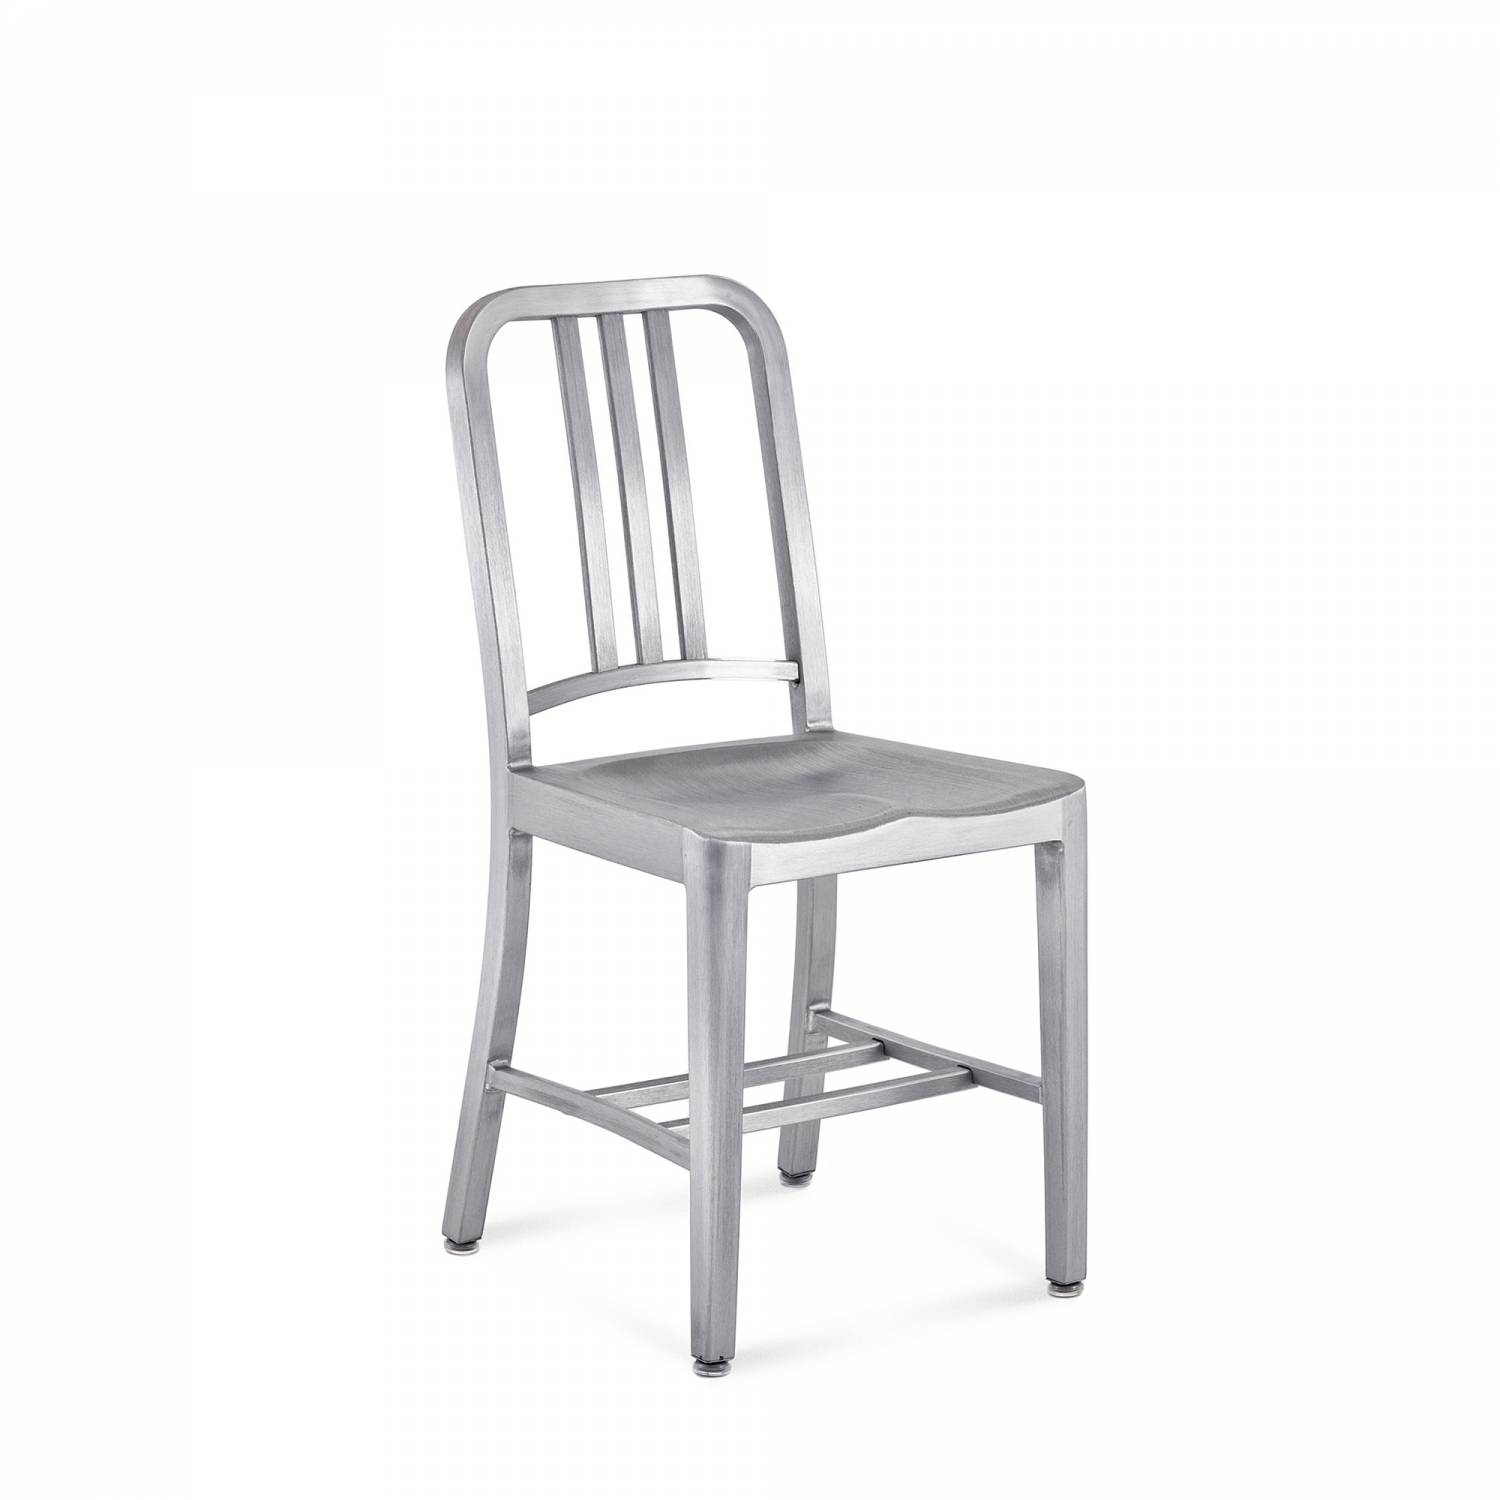 Emeco 9 Navy Chair (Recycled Aluminium) - Made to Order by Hand